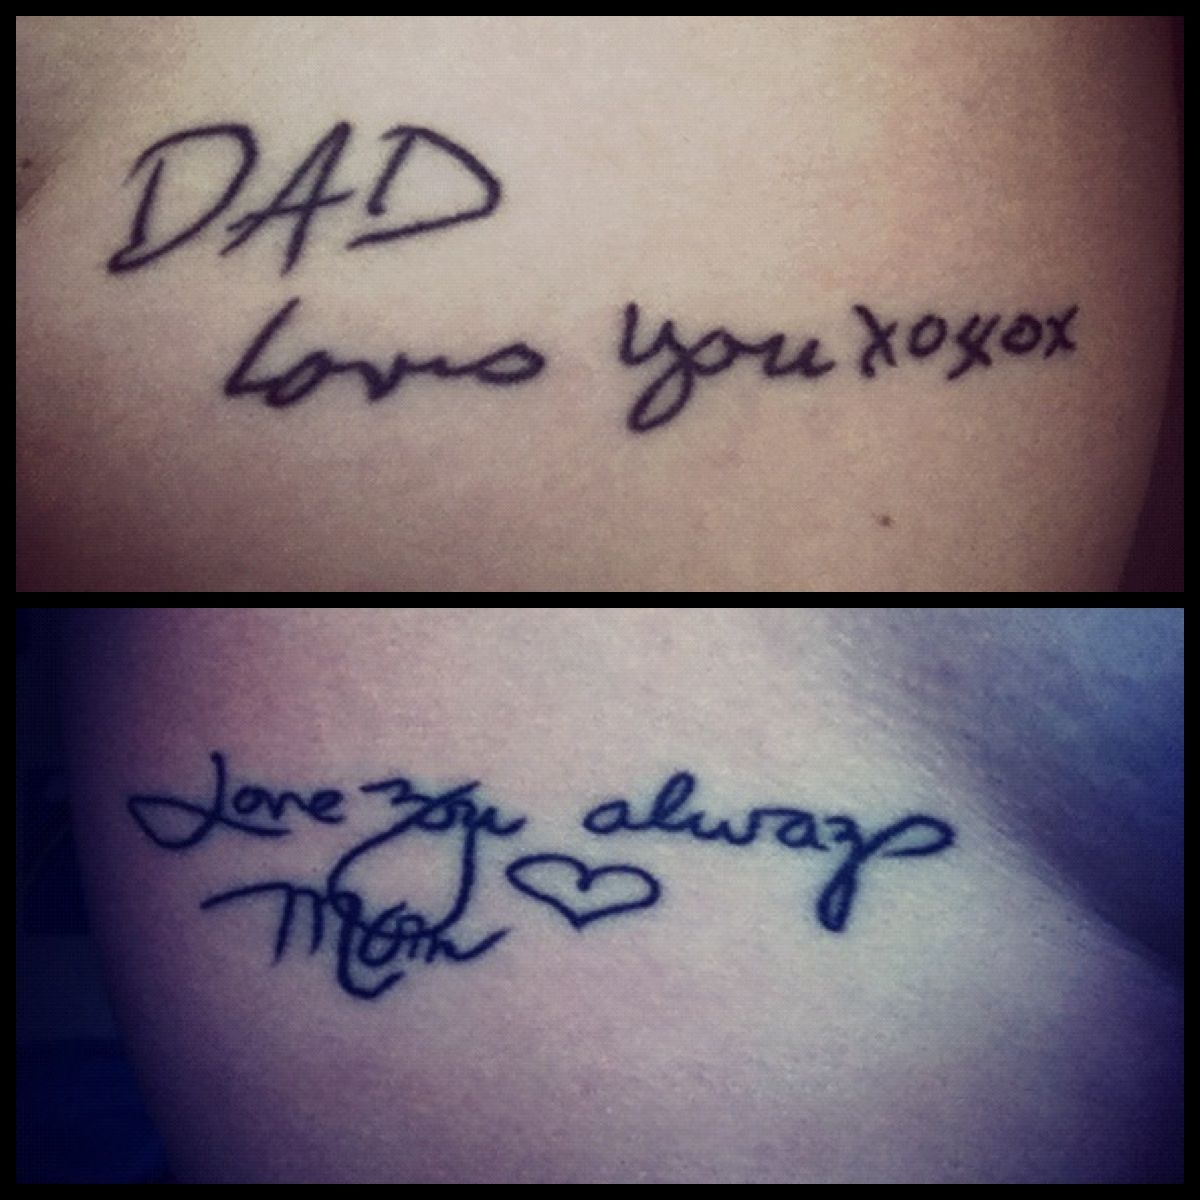 this would be a memorable tattoo. (a girl got her parents' handwriting from her birthday cards and made them her tattoos after they passed away)